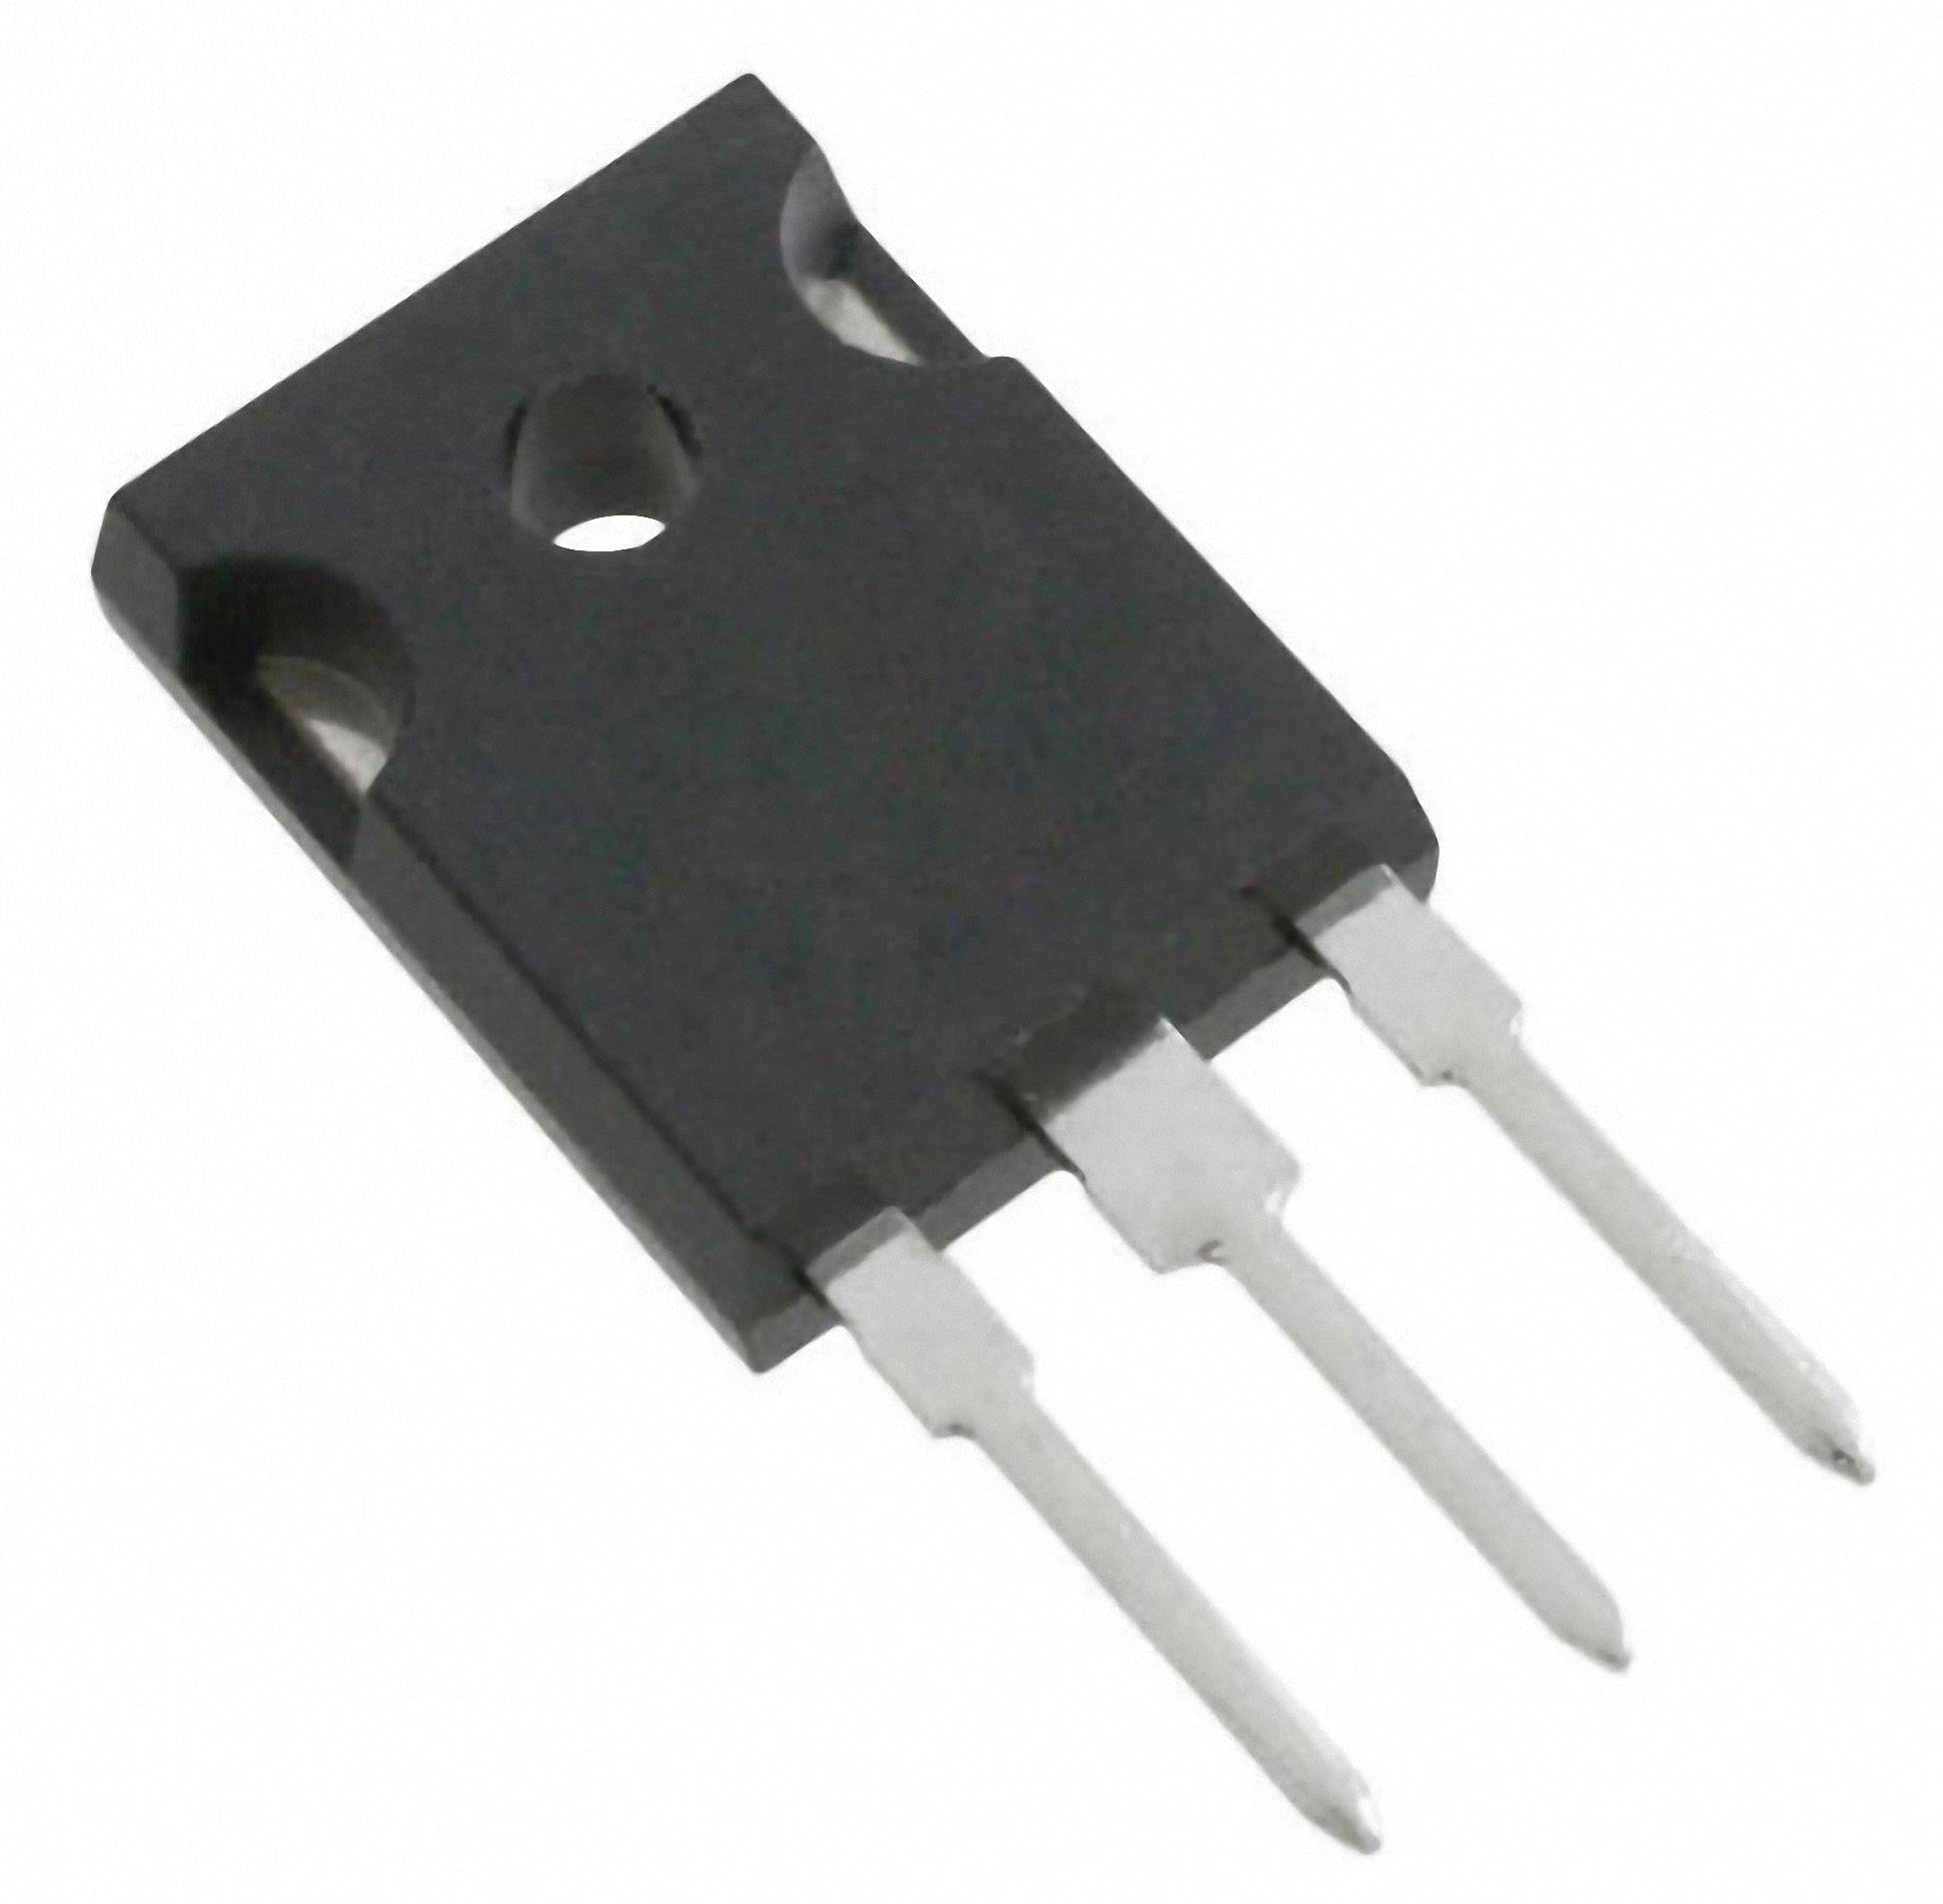 Tranzistor IGBT ON Semiconductor HGTG20N60A4, TO-247 , 600 V, samostatný, standardní